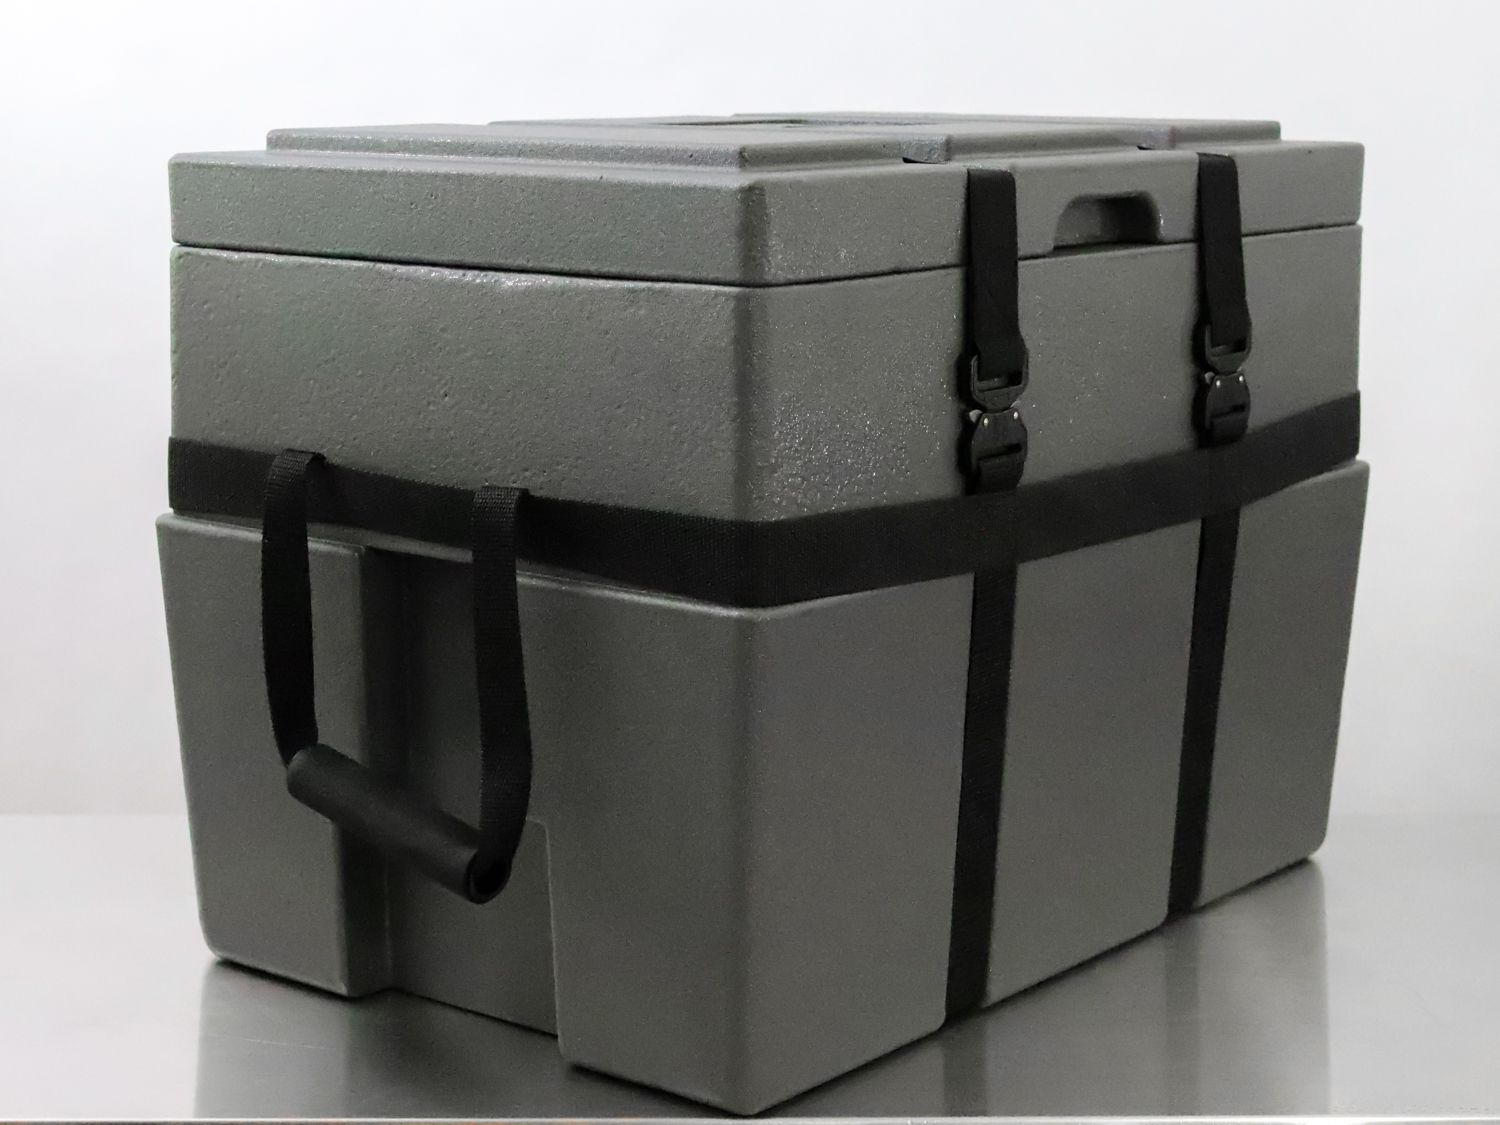 Side angle of the Rugged Road Onitis 45 Cooler